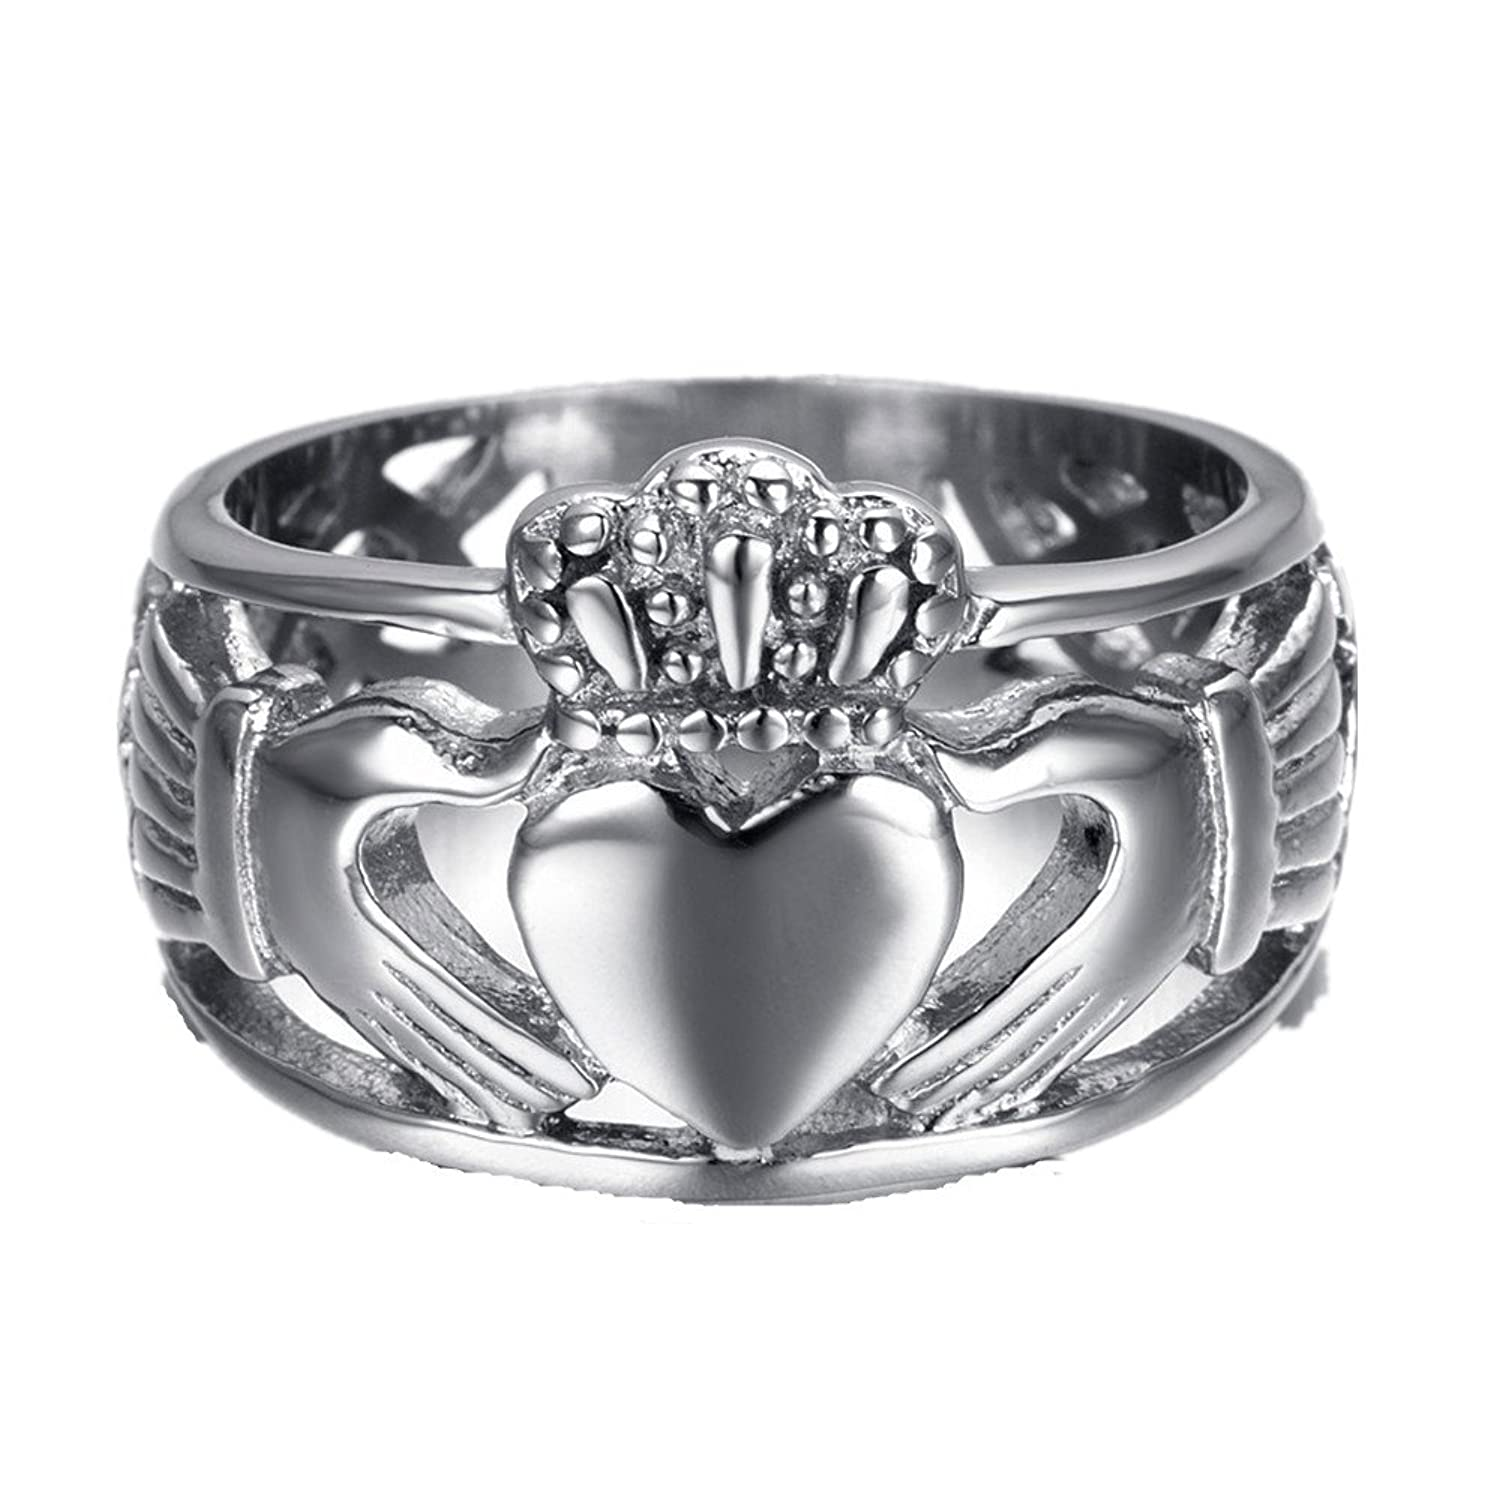 HAMANY Jewelry Mens Stainless Steel Claddagh Ring With Celtic Knot Eternity Design